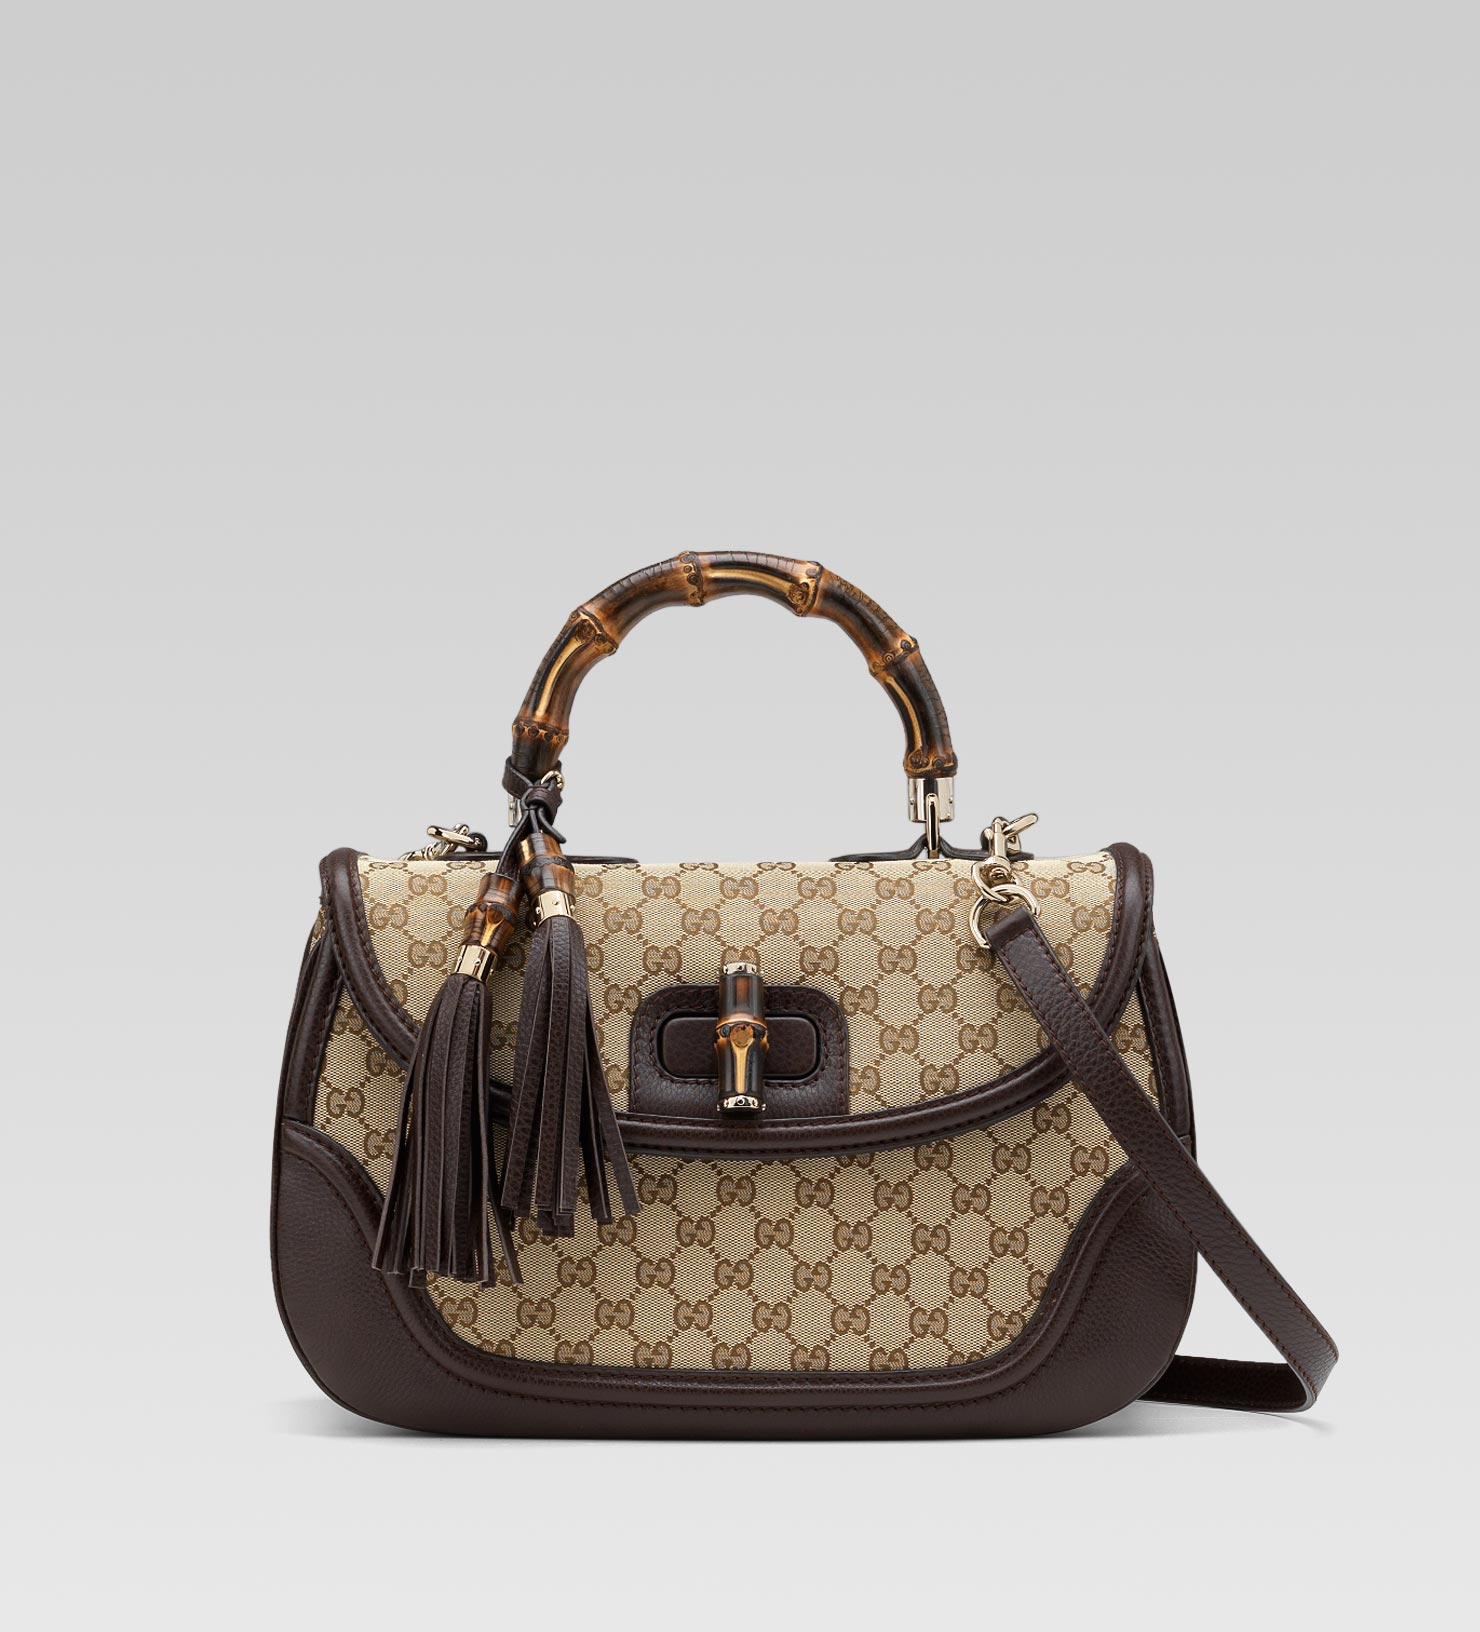 00db25189 Gucci New Bamboo Original Gg Canvas Top Handle Bag in Natural - Lyst